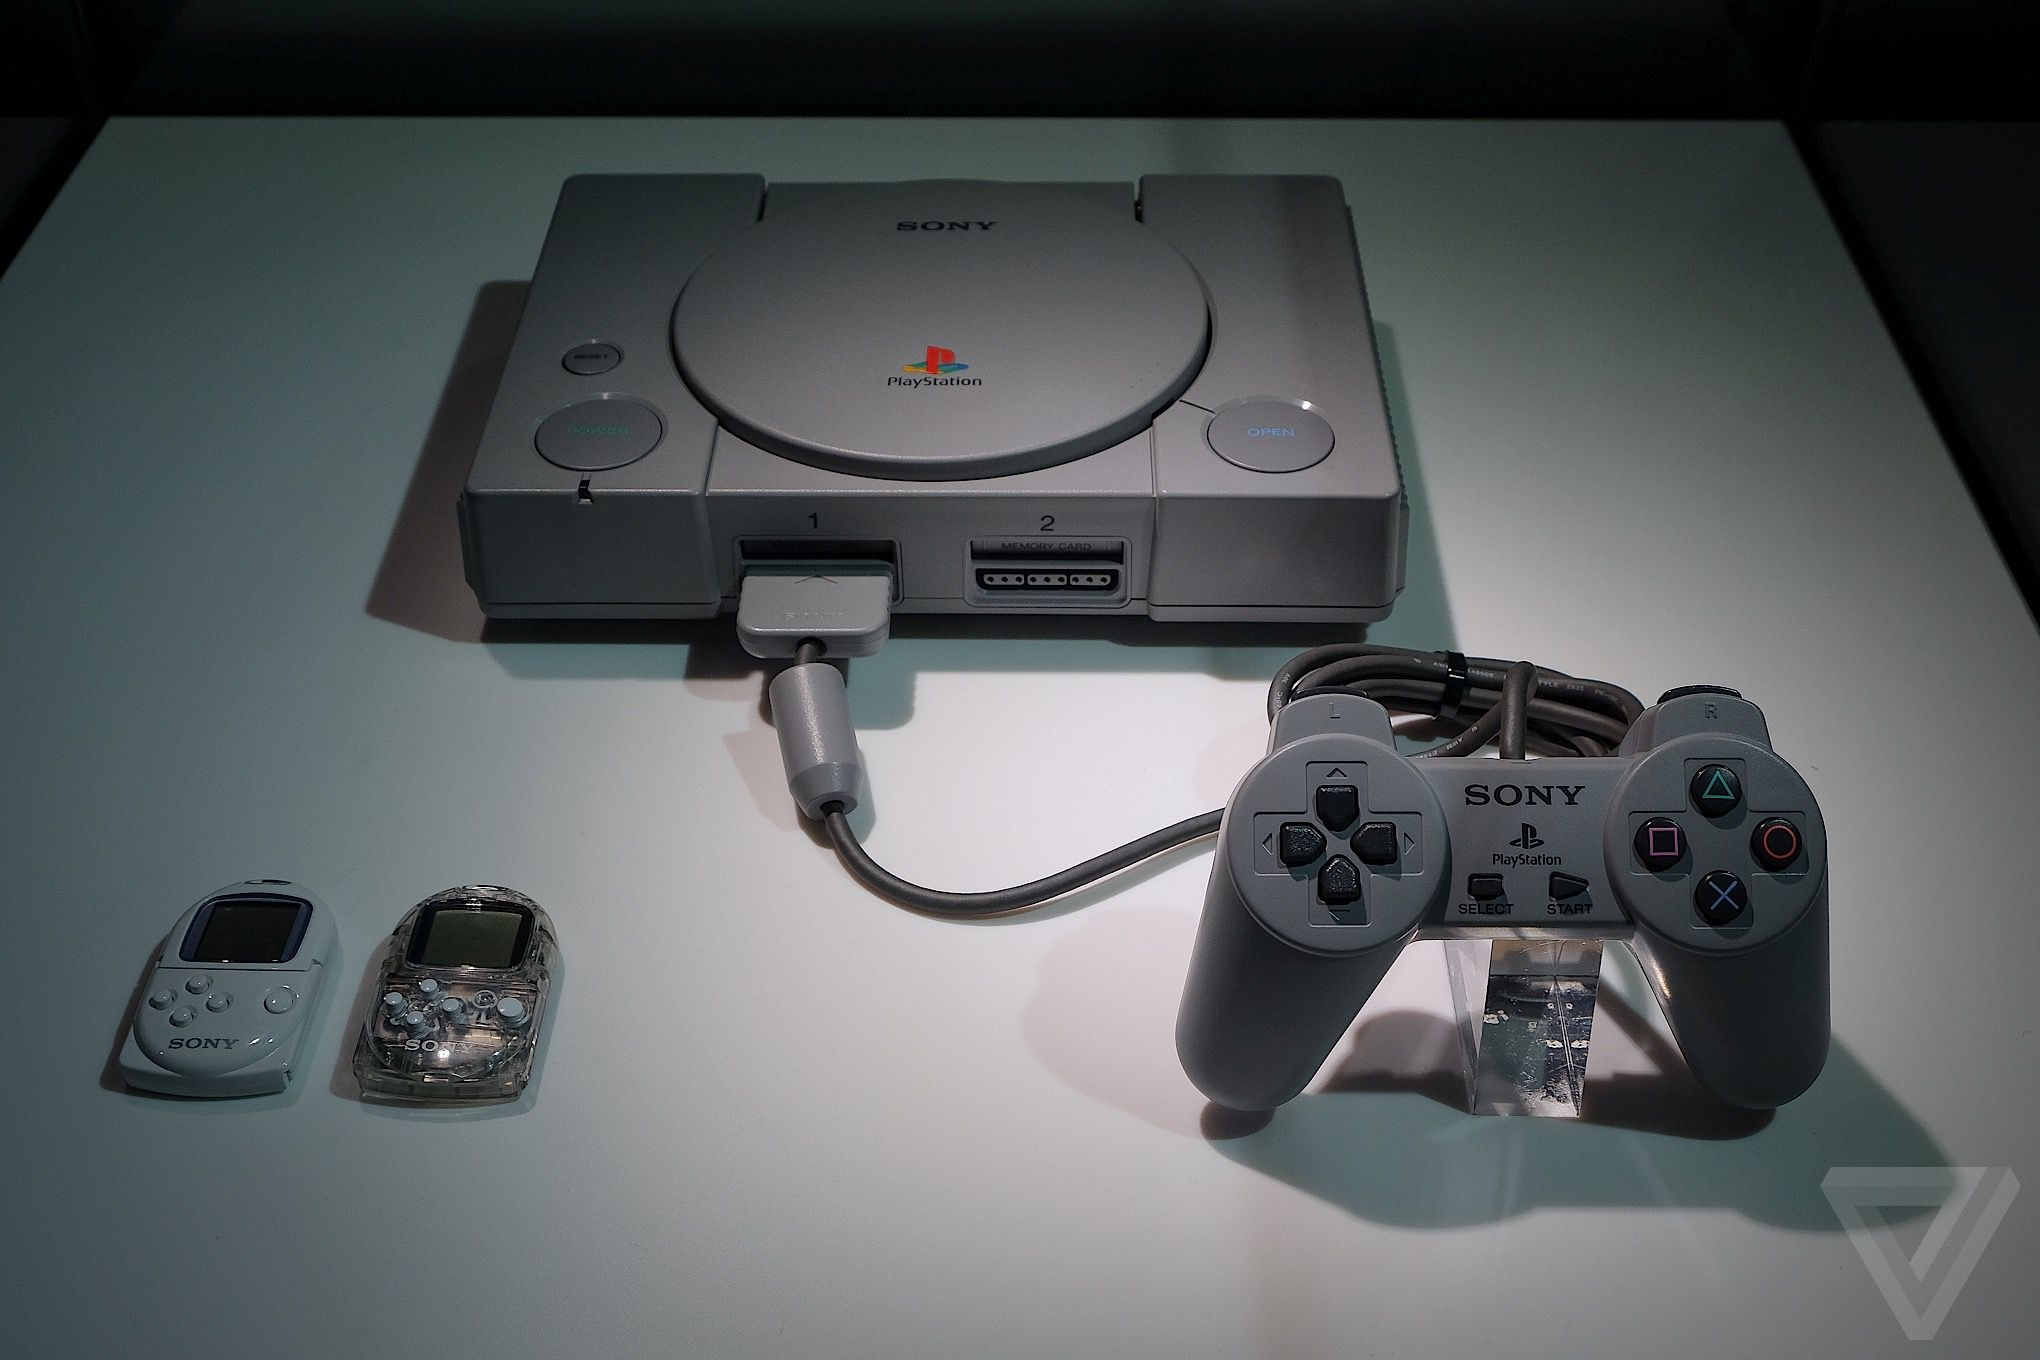 The Original Playstation Launch Is An Iphonelevel Example Of How To Enter  An Established Market And Blindside Every Existing Player